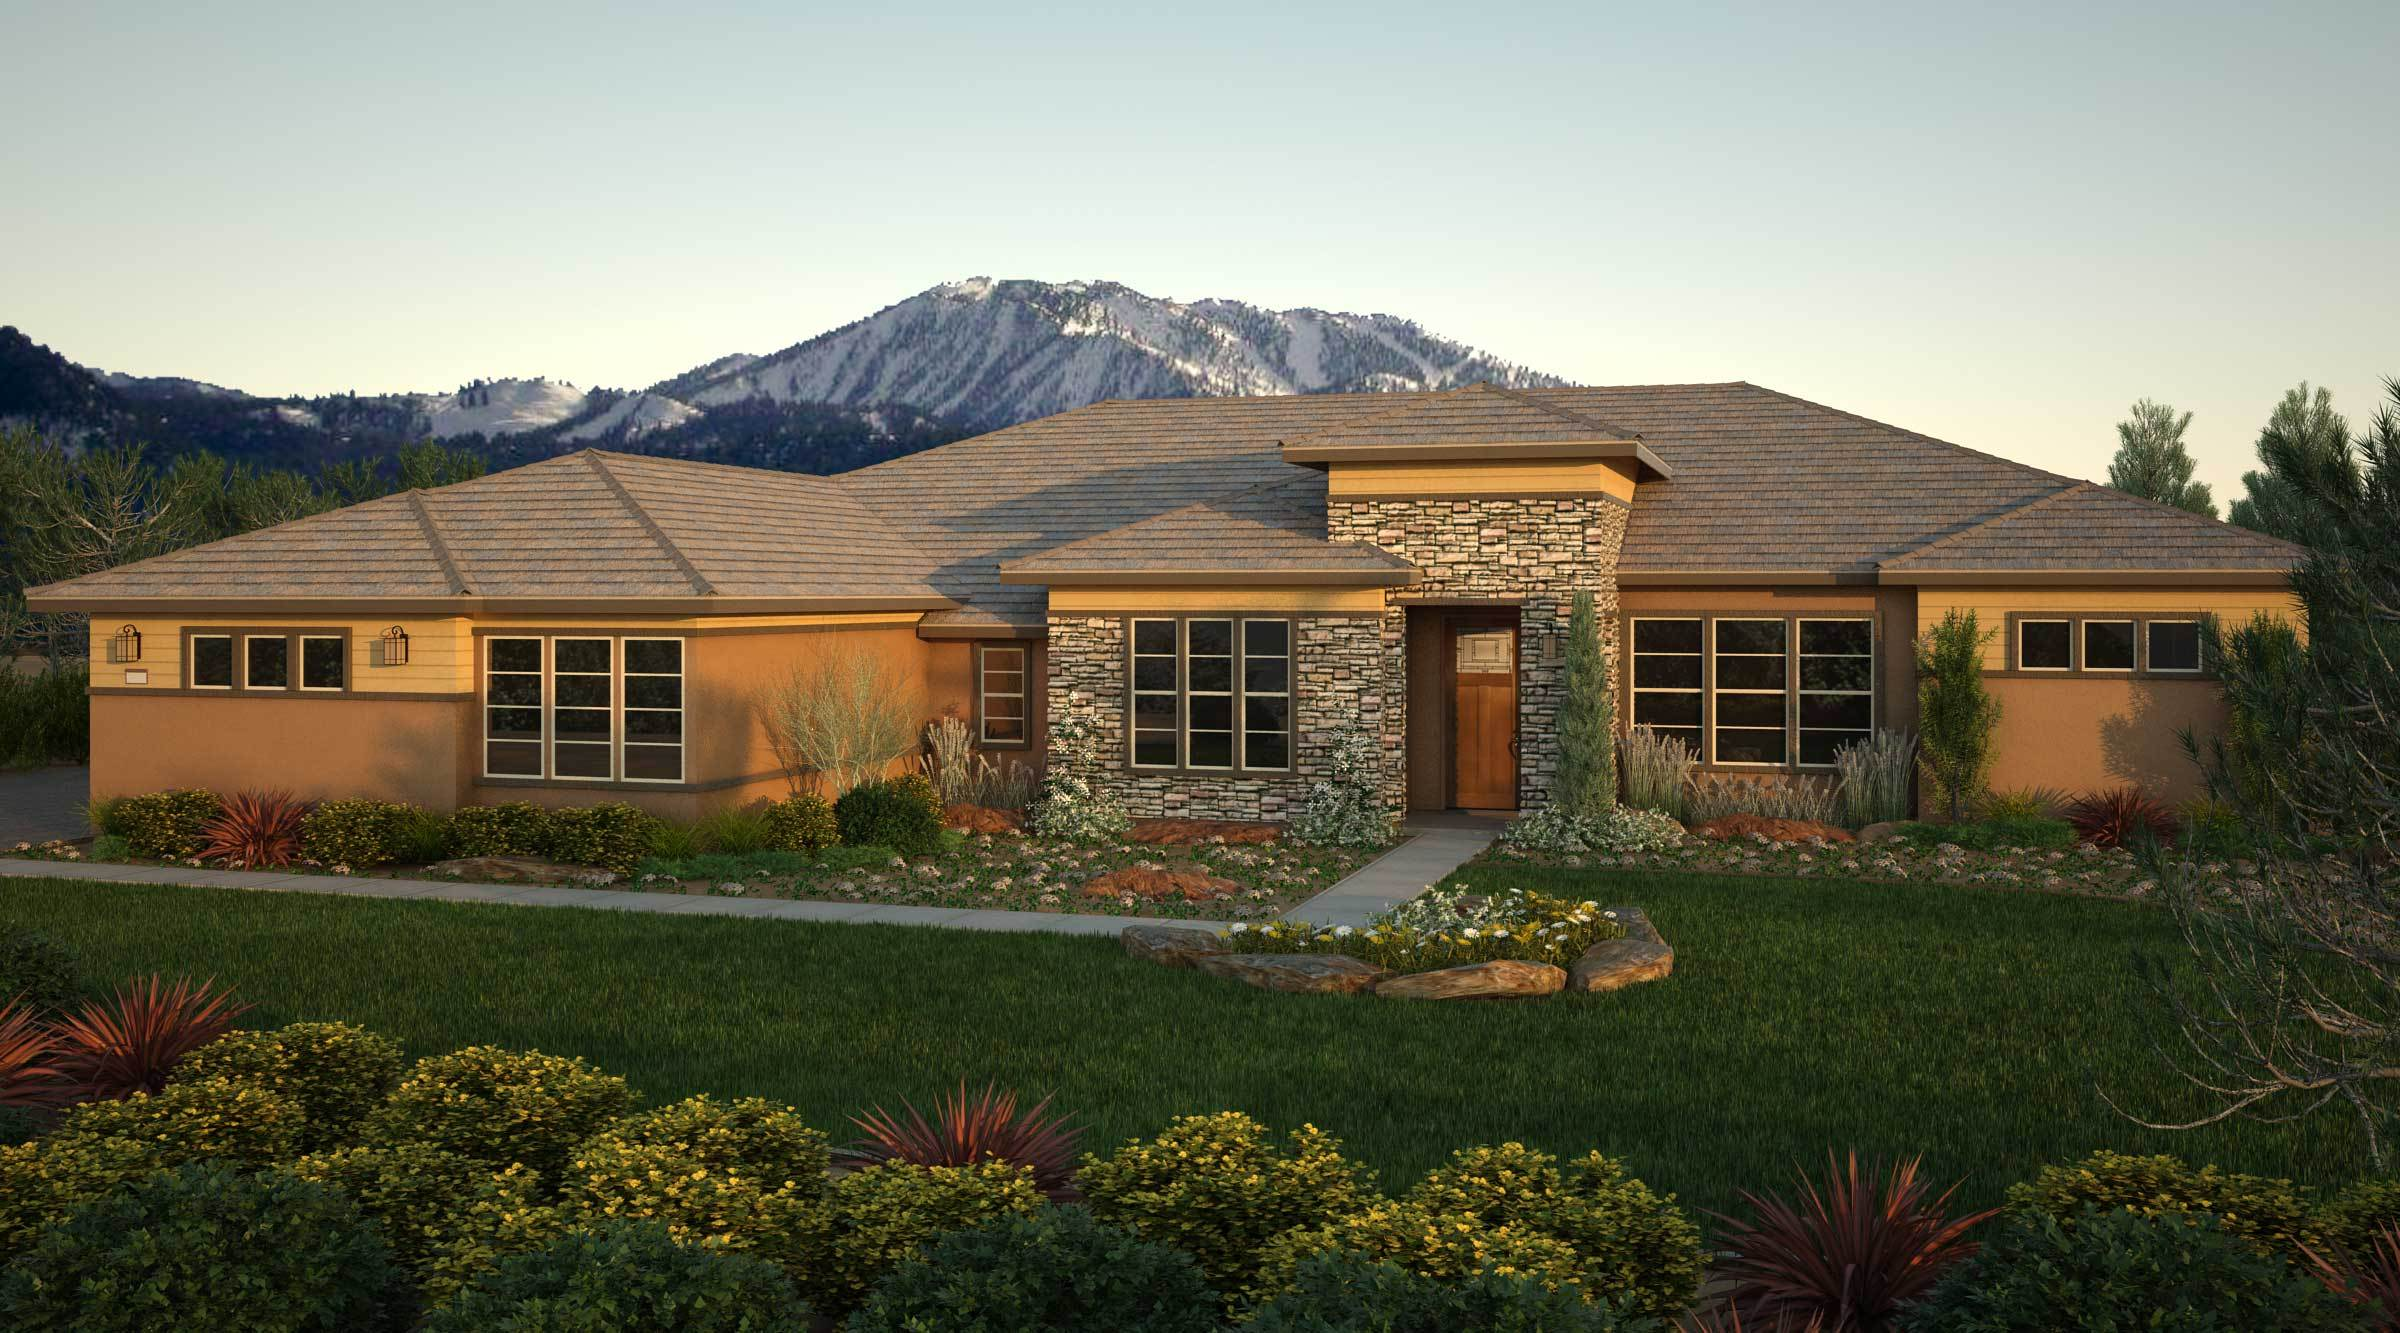 Le Bordeaux - Monte Vista: Reno, NV - Tim Lewis Communities